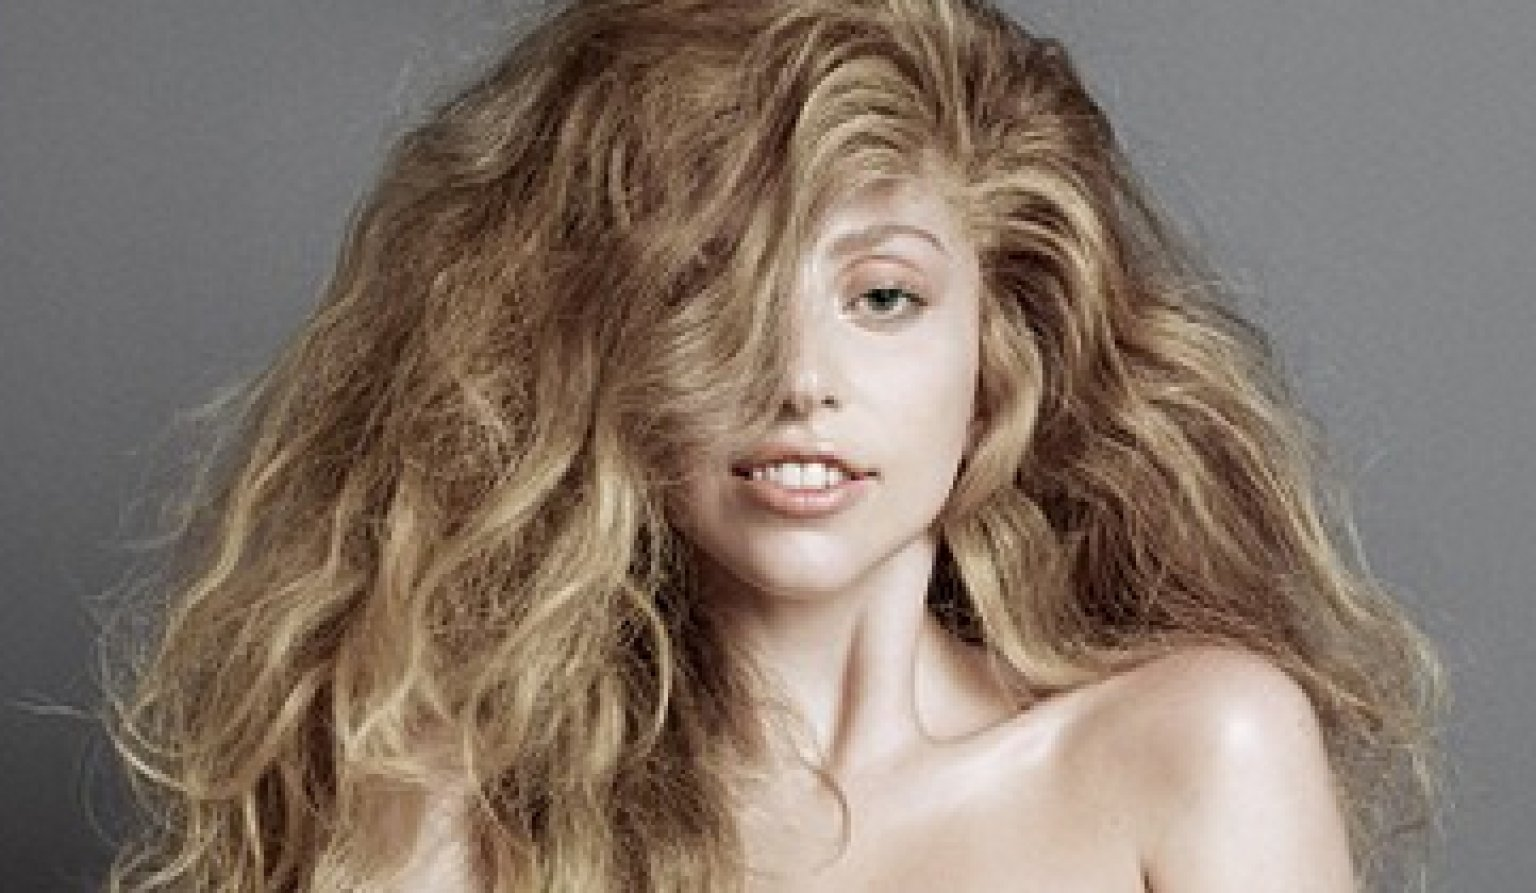 free images of lady gaga naked